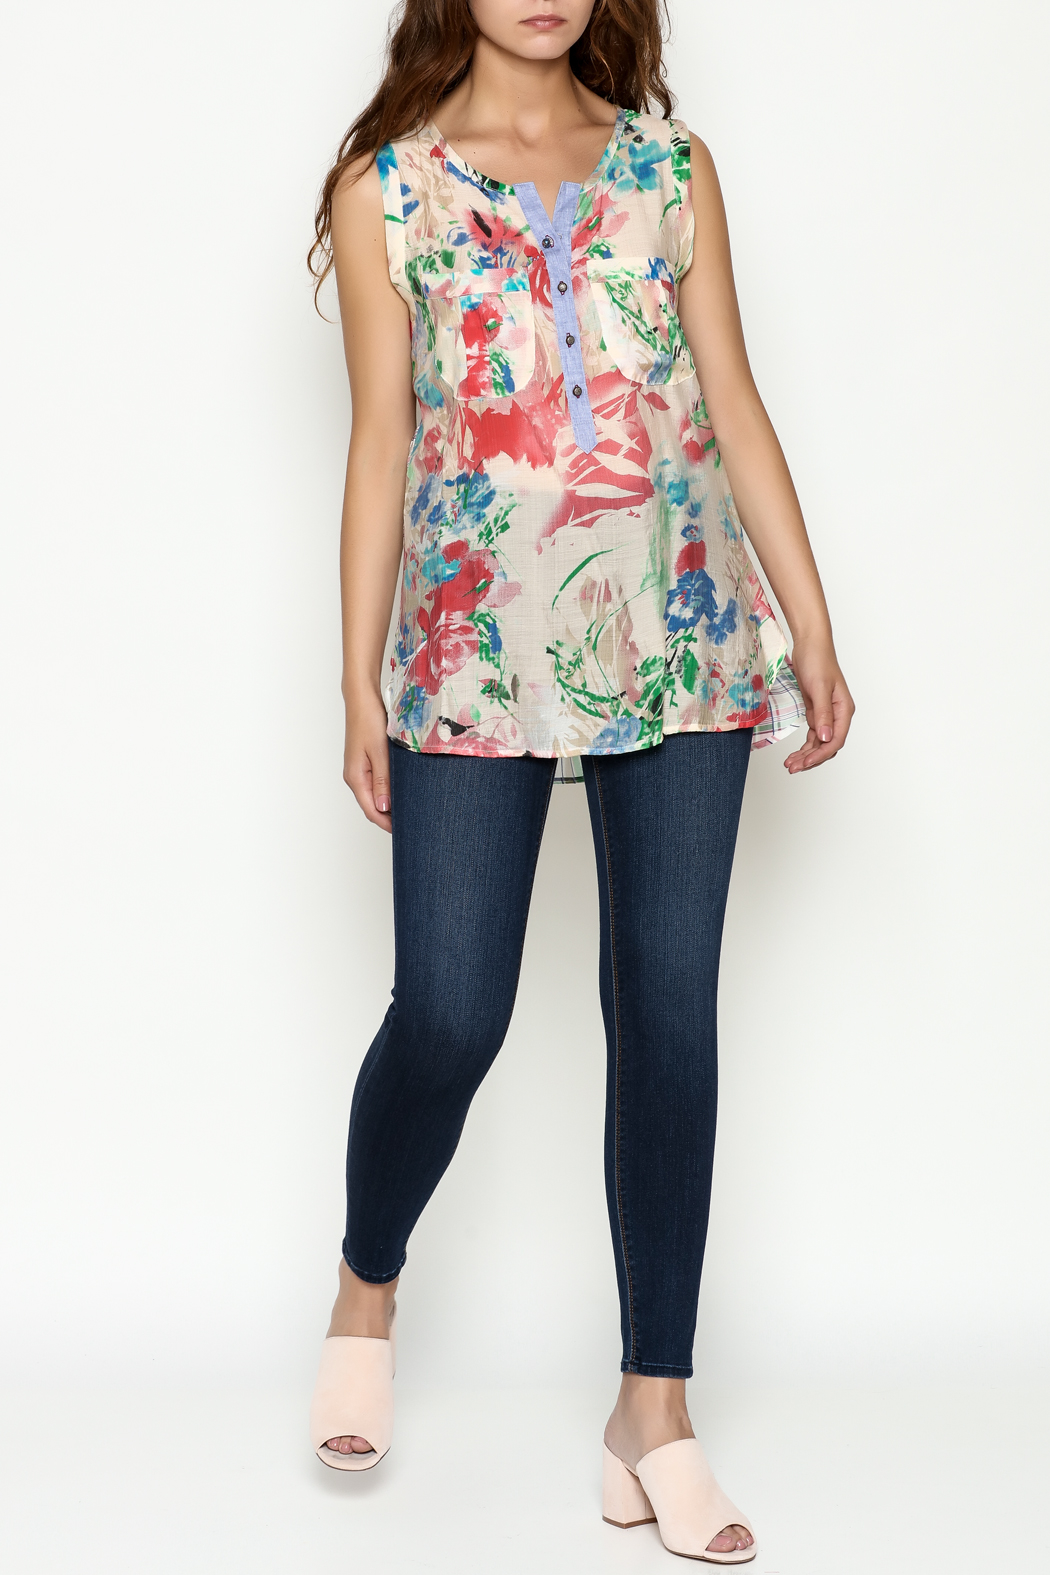 Aratta Marigold Top - Side Cropped Image